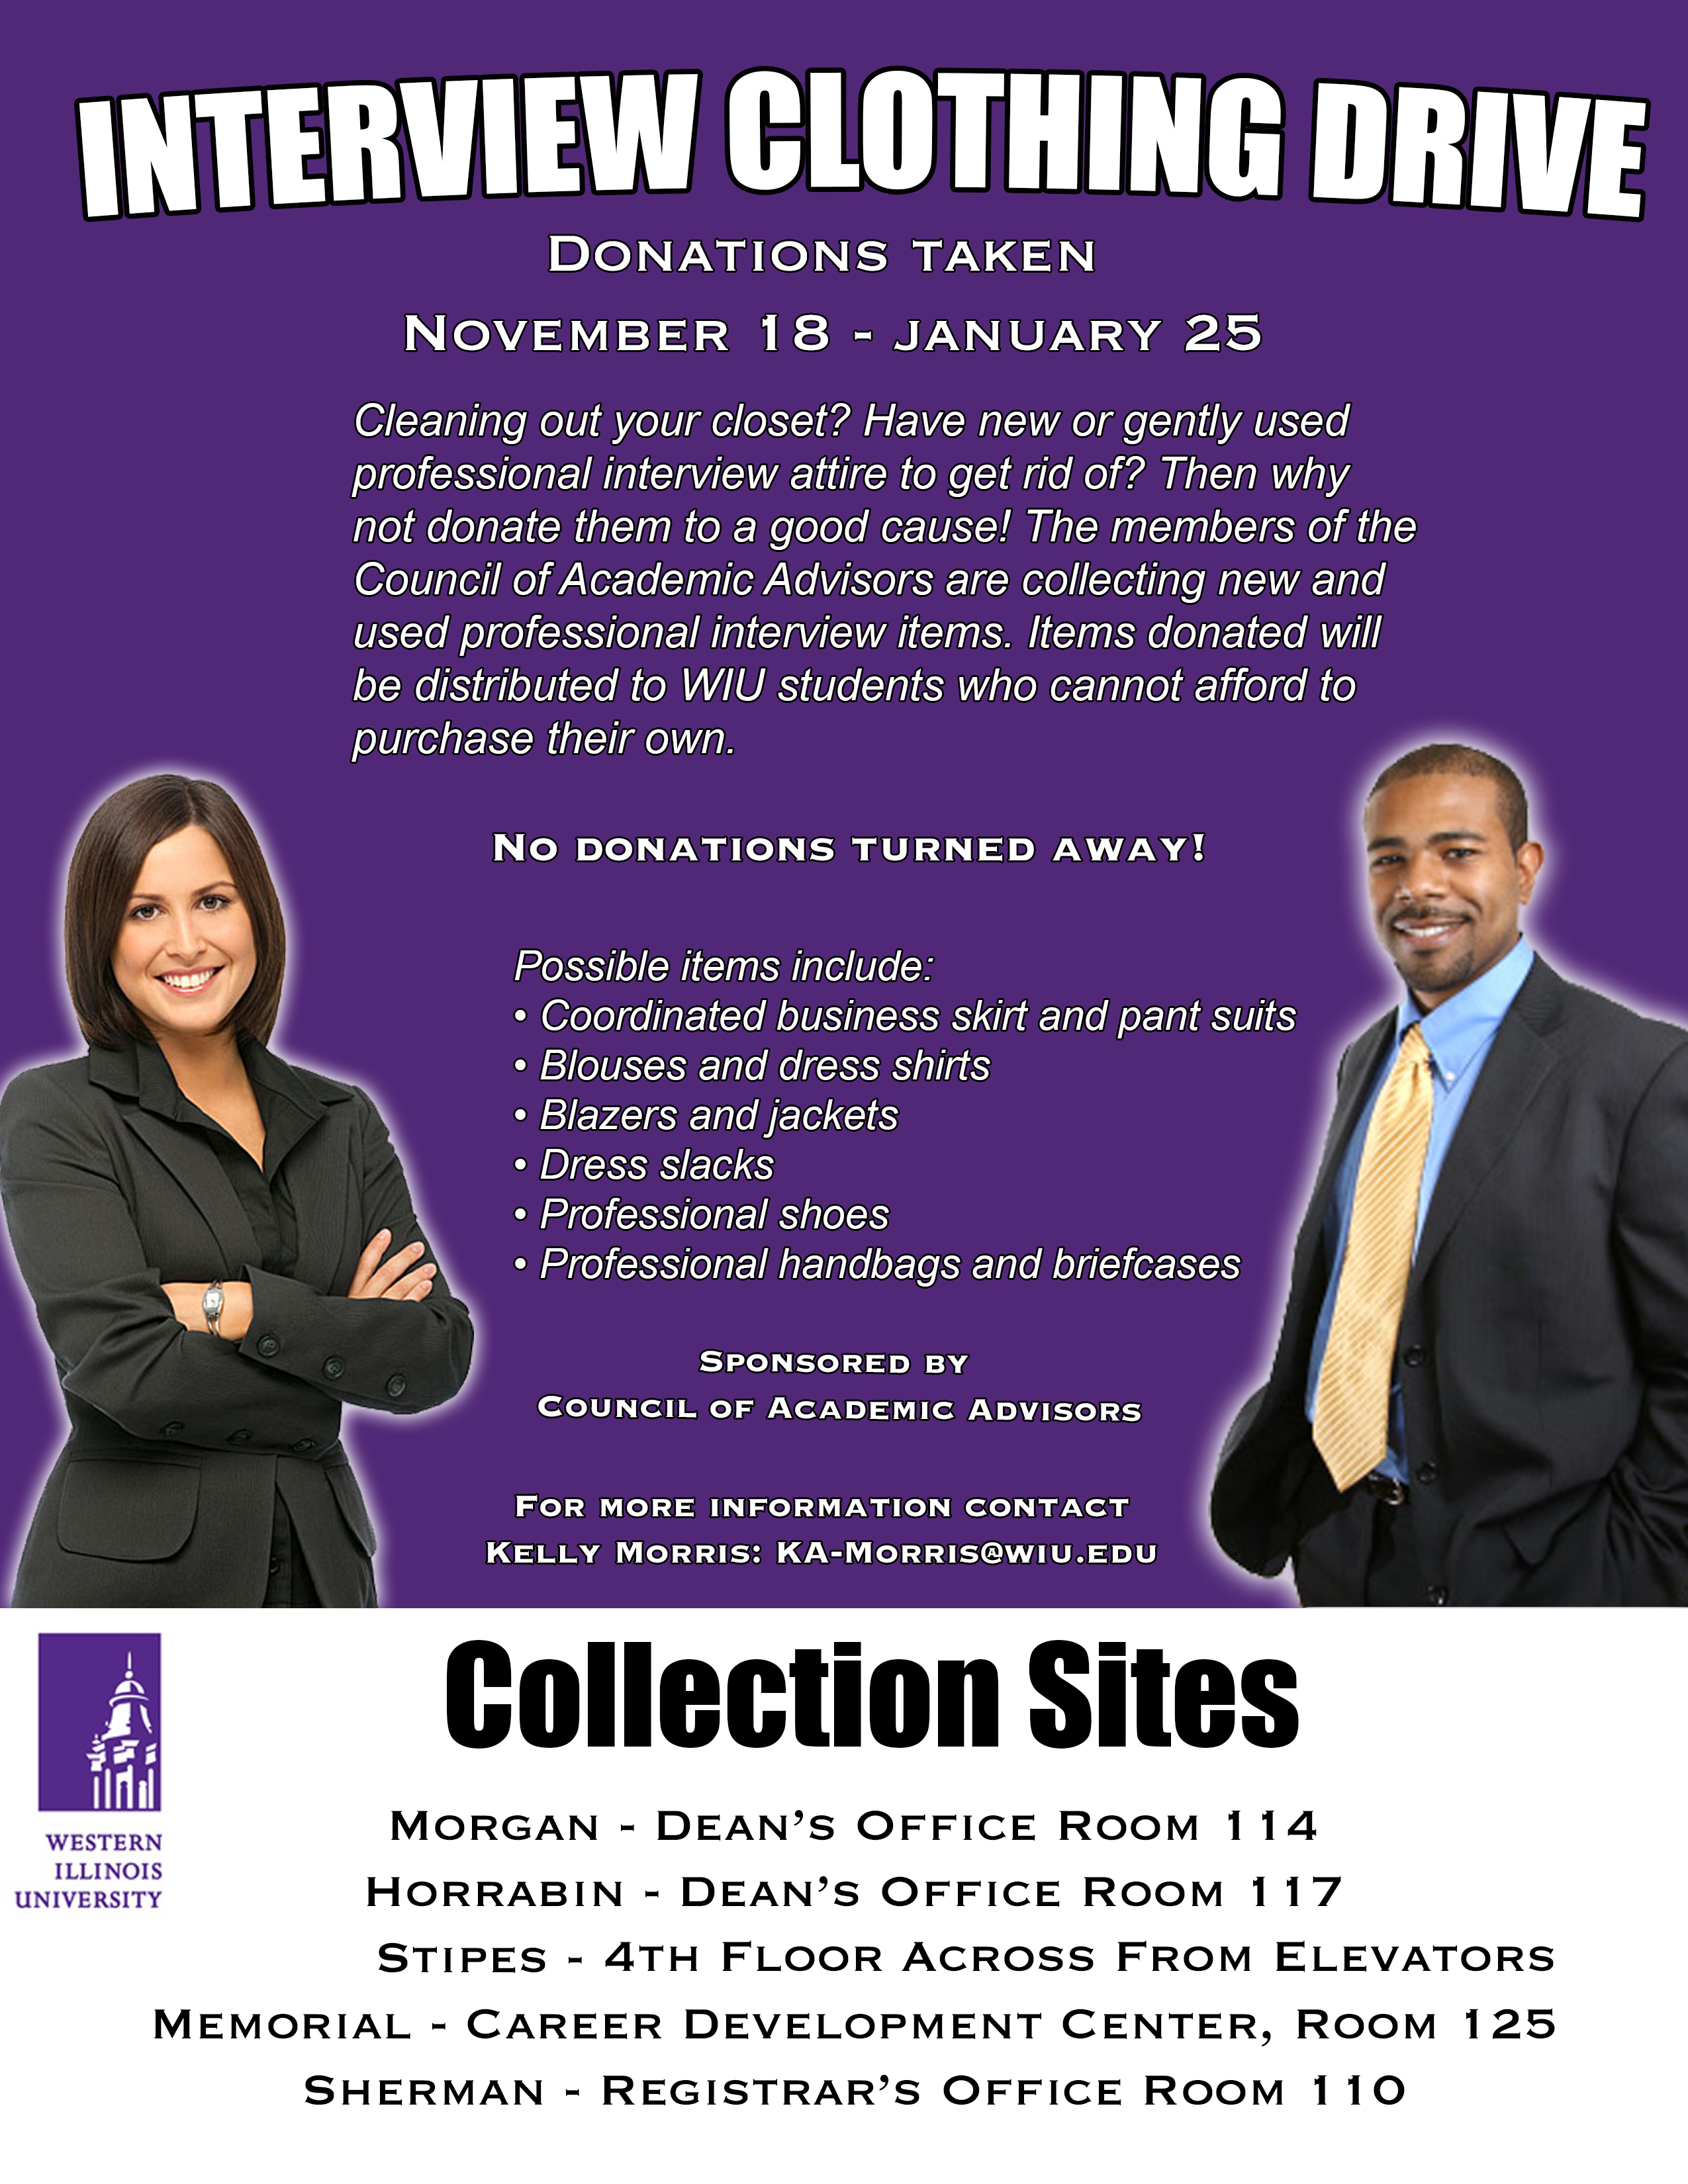 Interview Clothing Drive - contact Kelly Morris, KA-Morris@wiu.edu